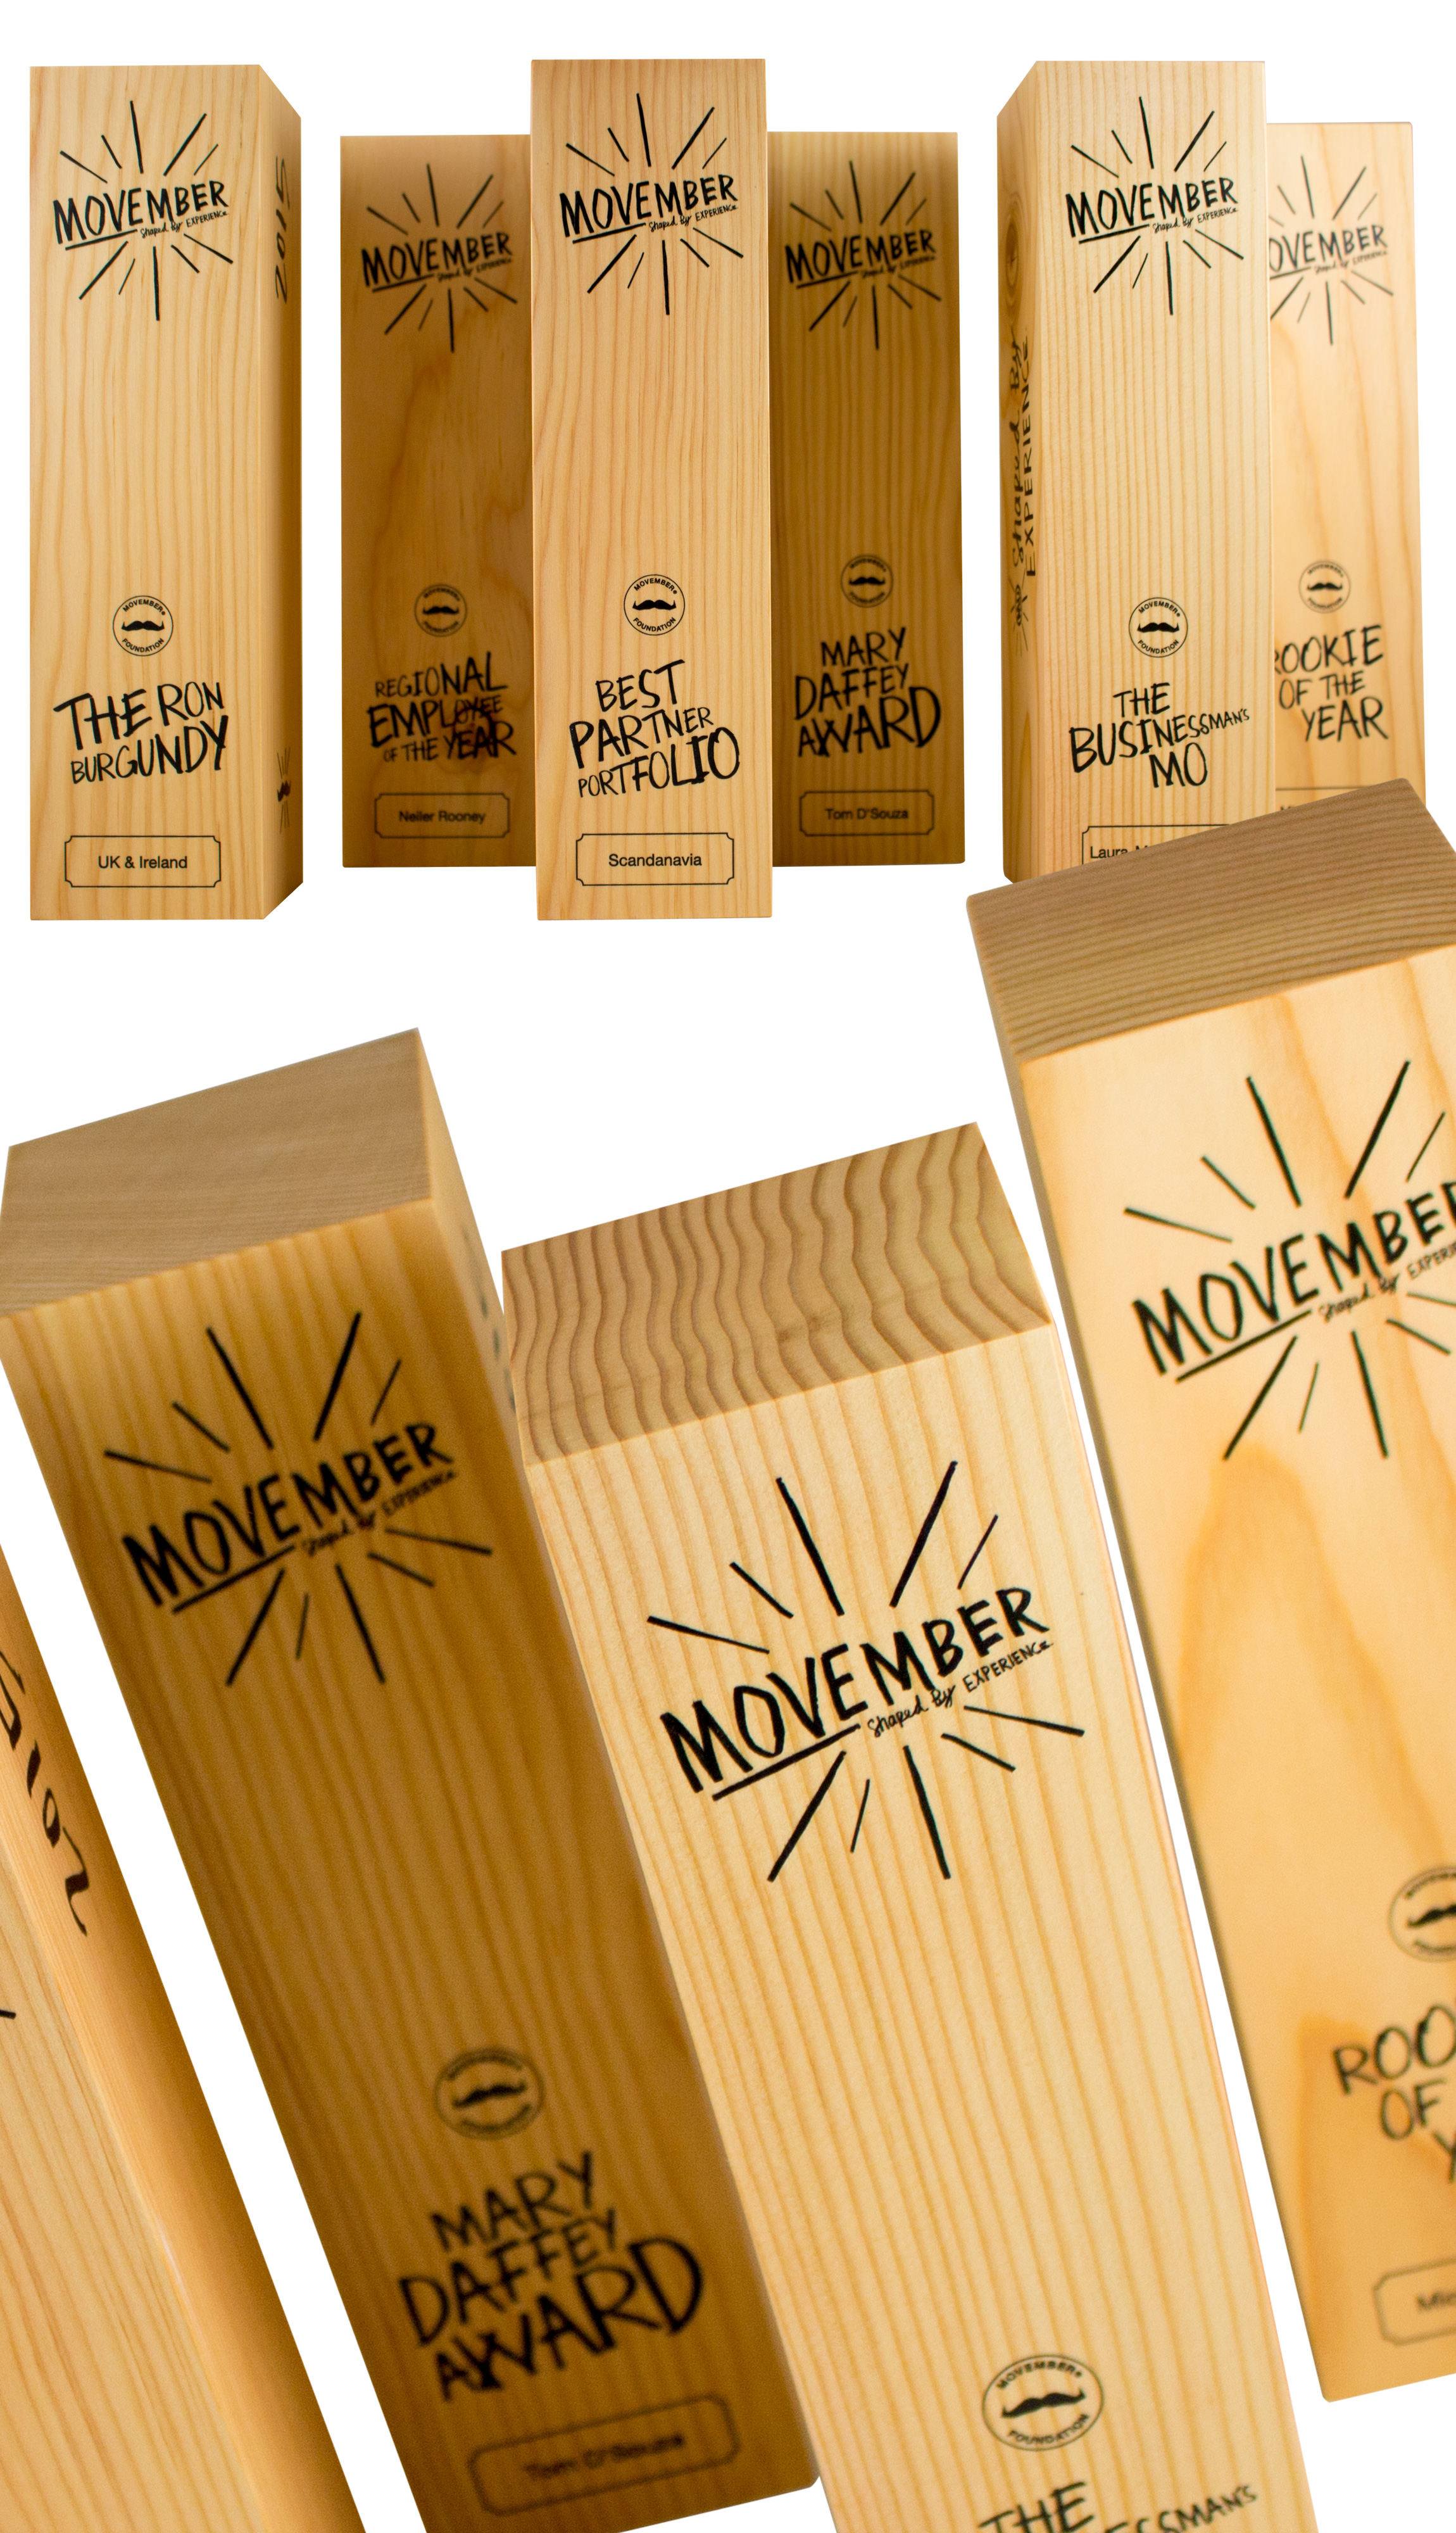 Movember simple and fresh awards.